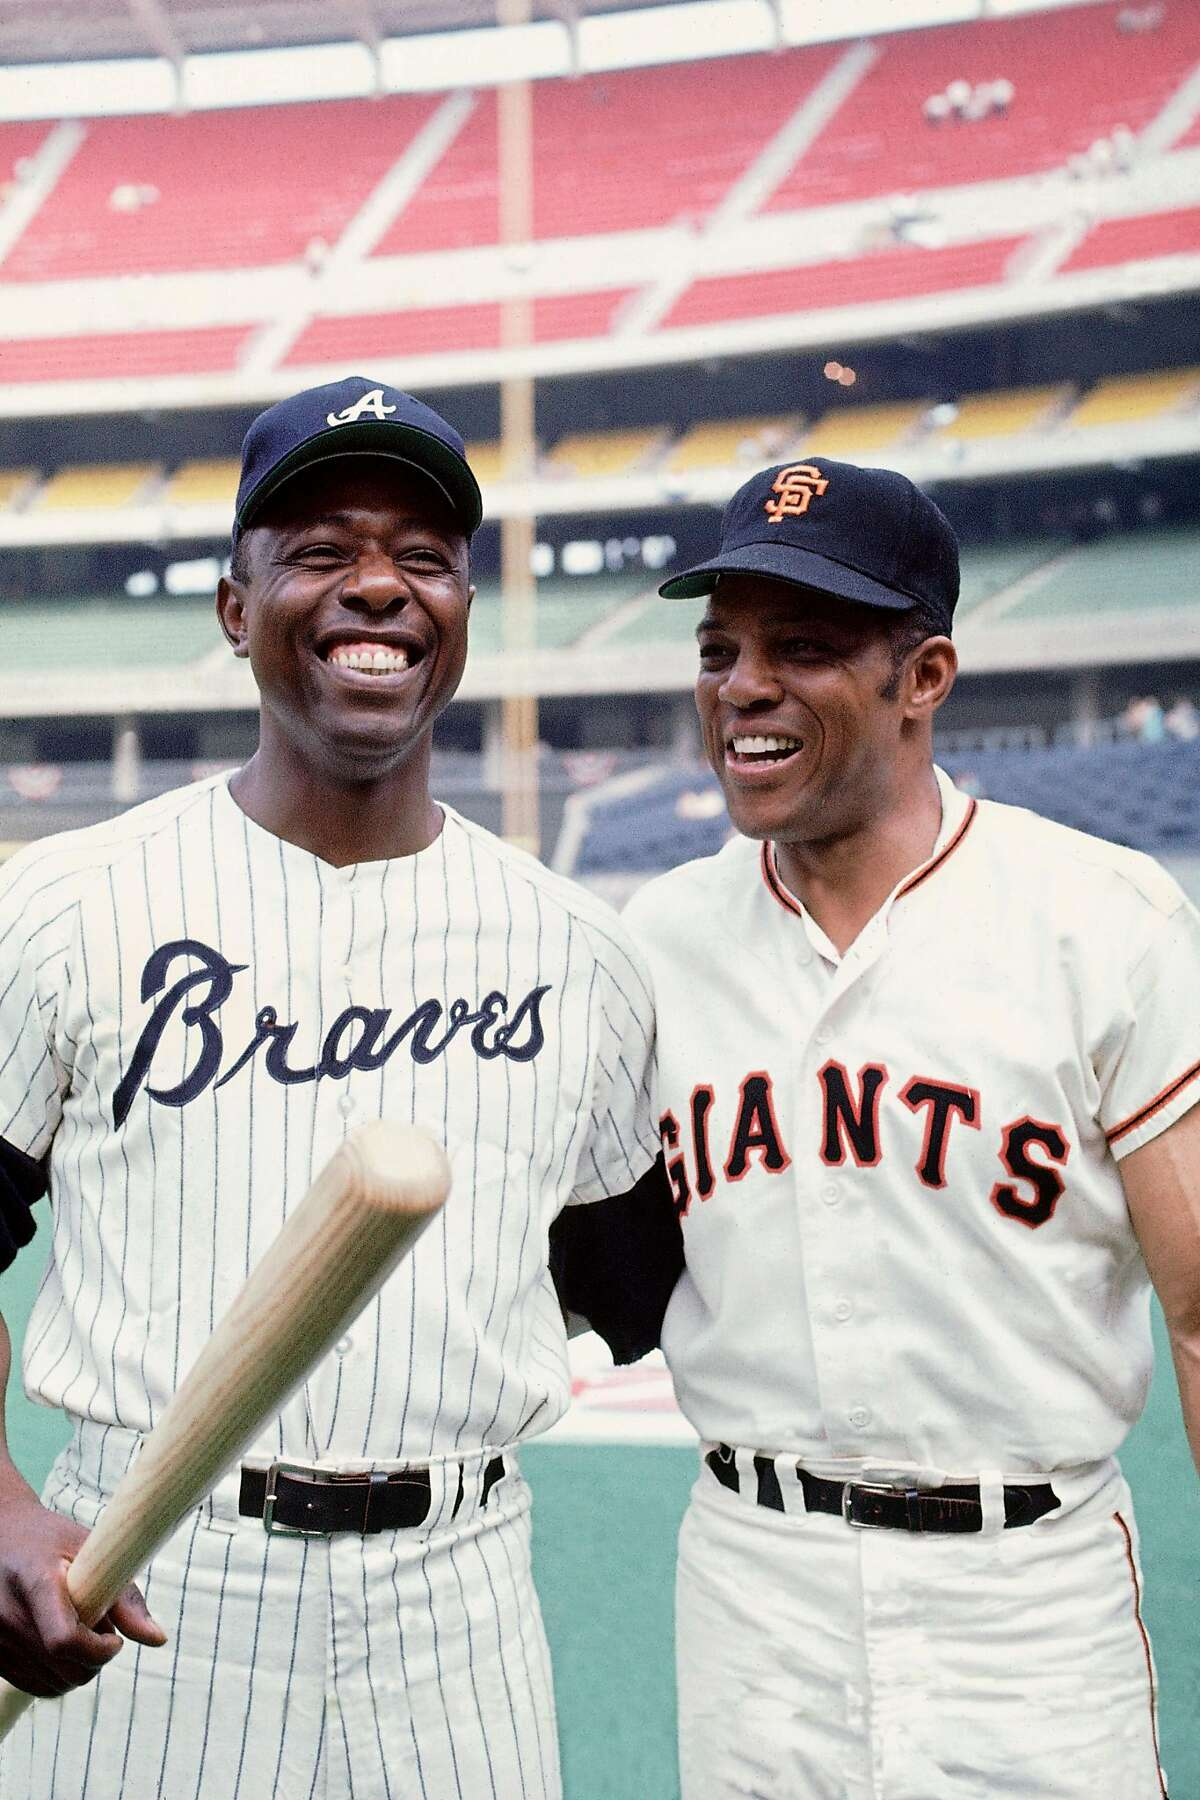 Hank Aaron (left) and Willie Mays - perhaps the two greatest players ever - share a laugh before the 1970 All-Star Game.